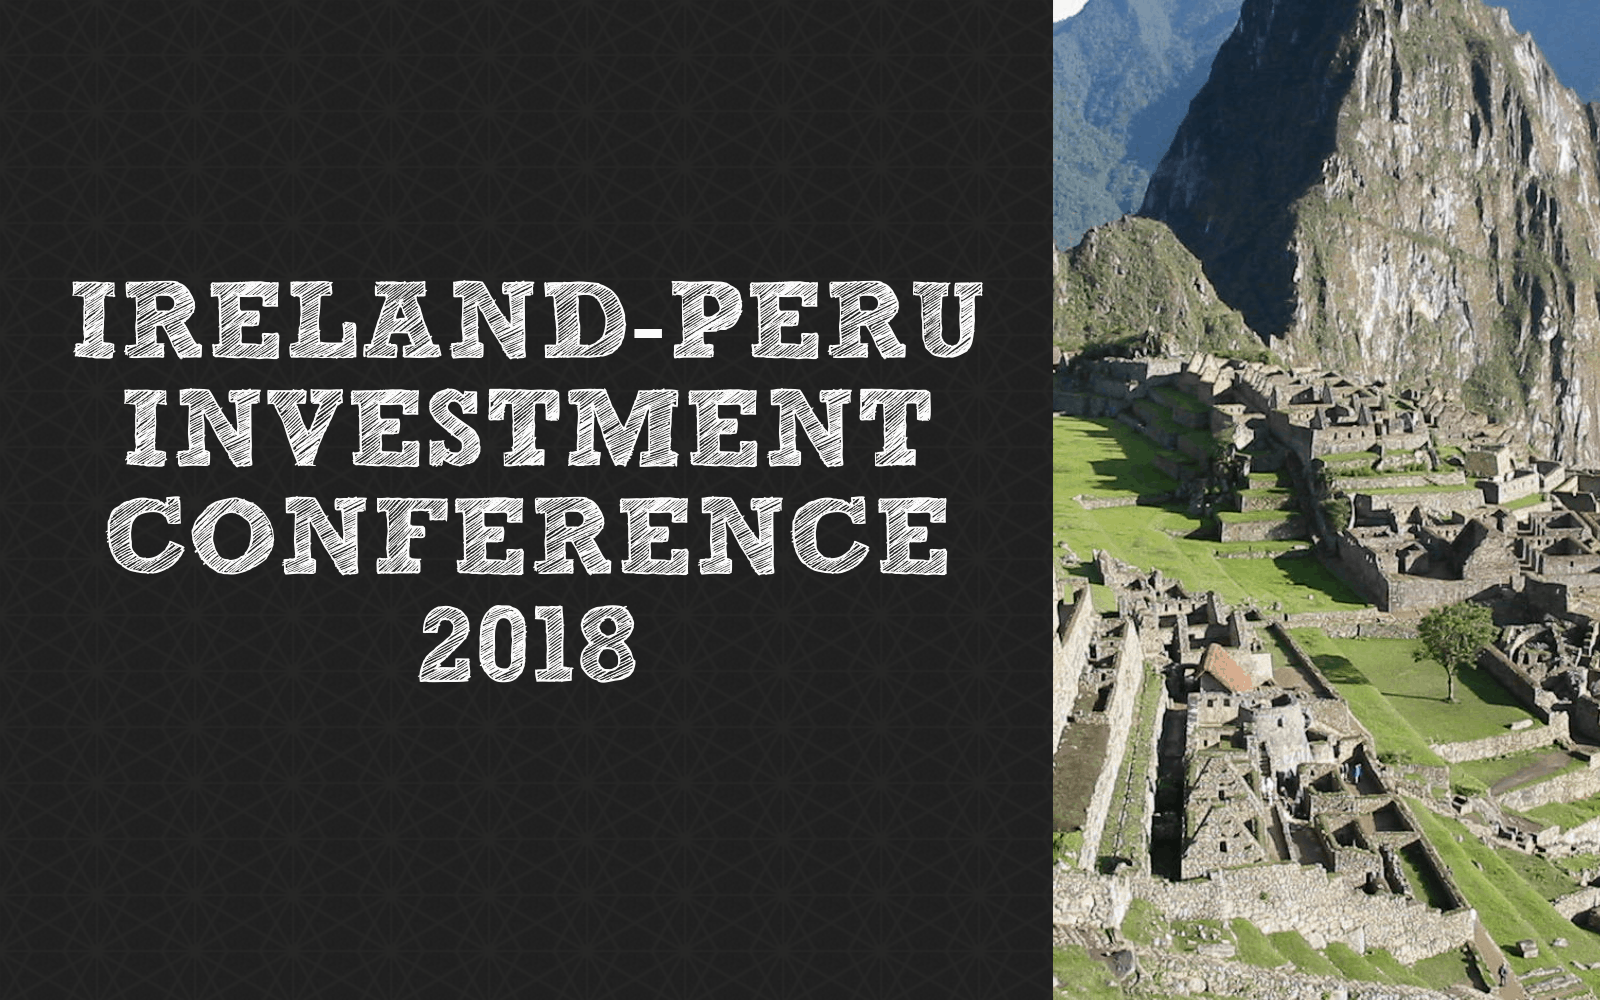 Ireland Peru Investment Conference 2018